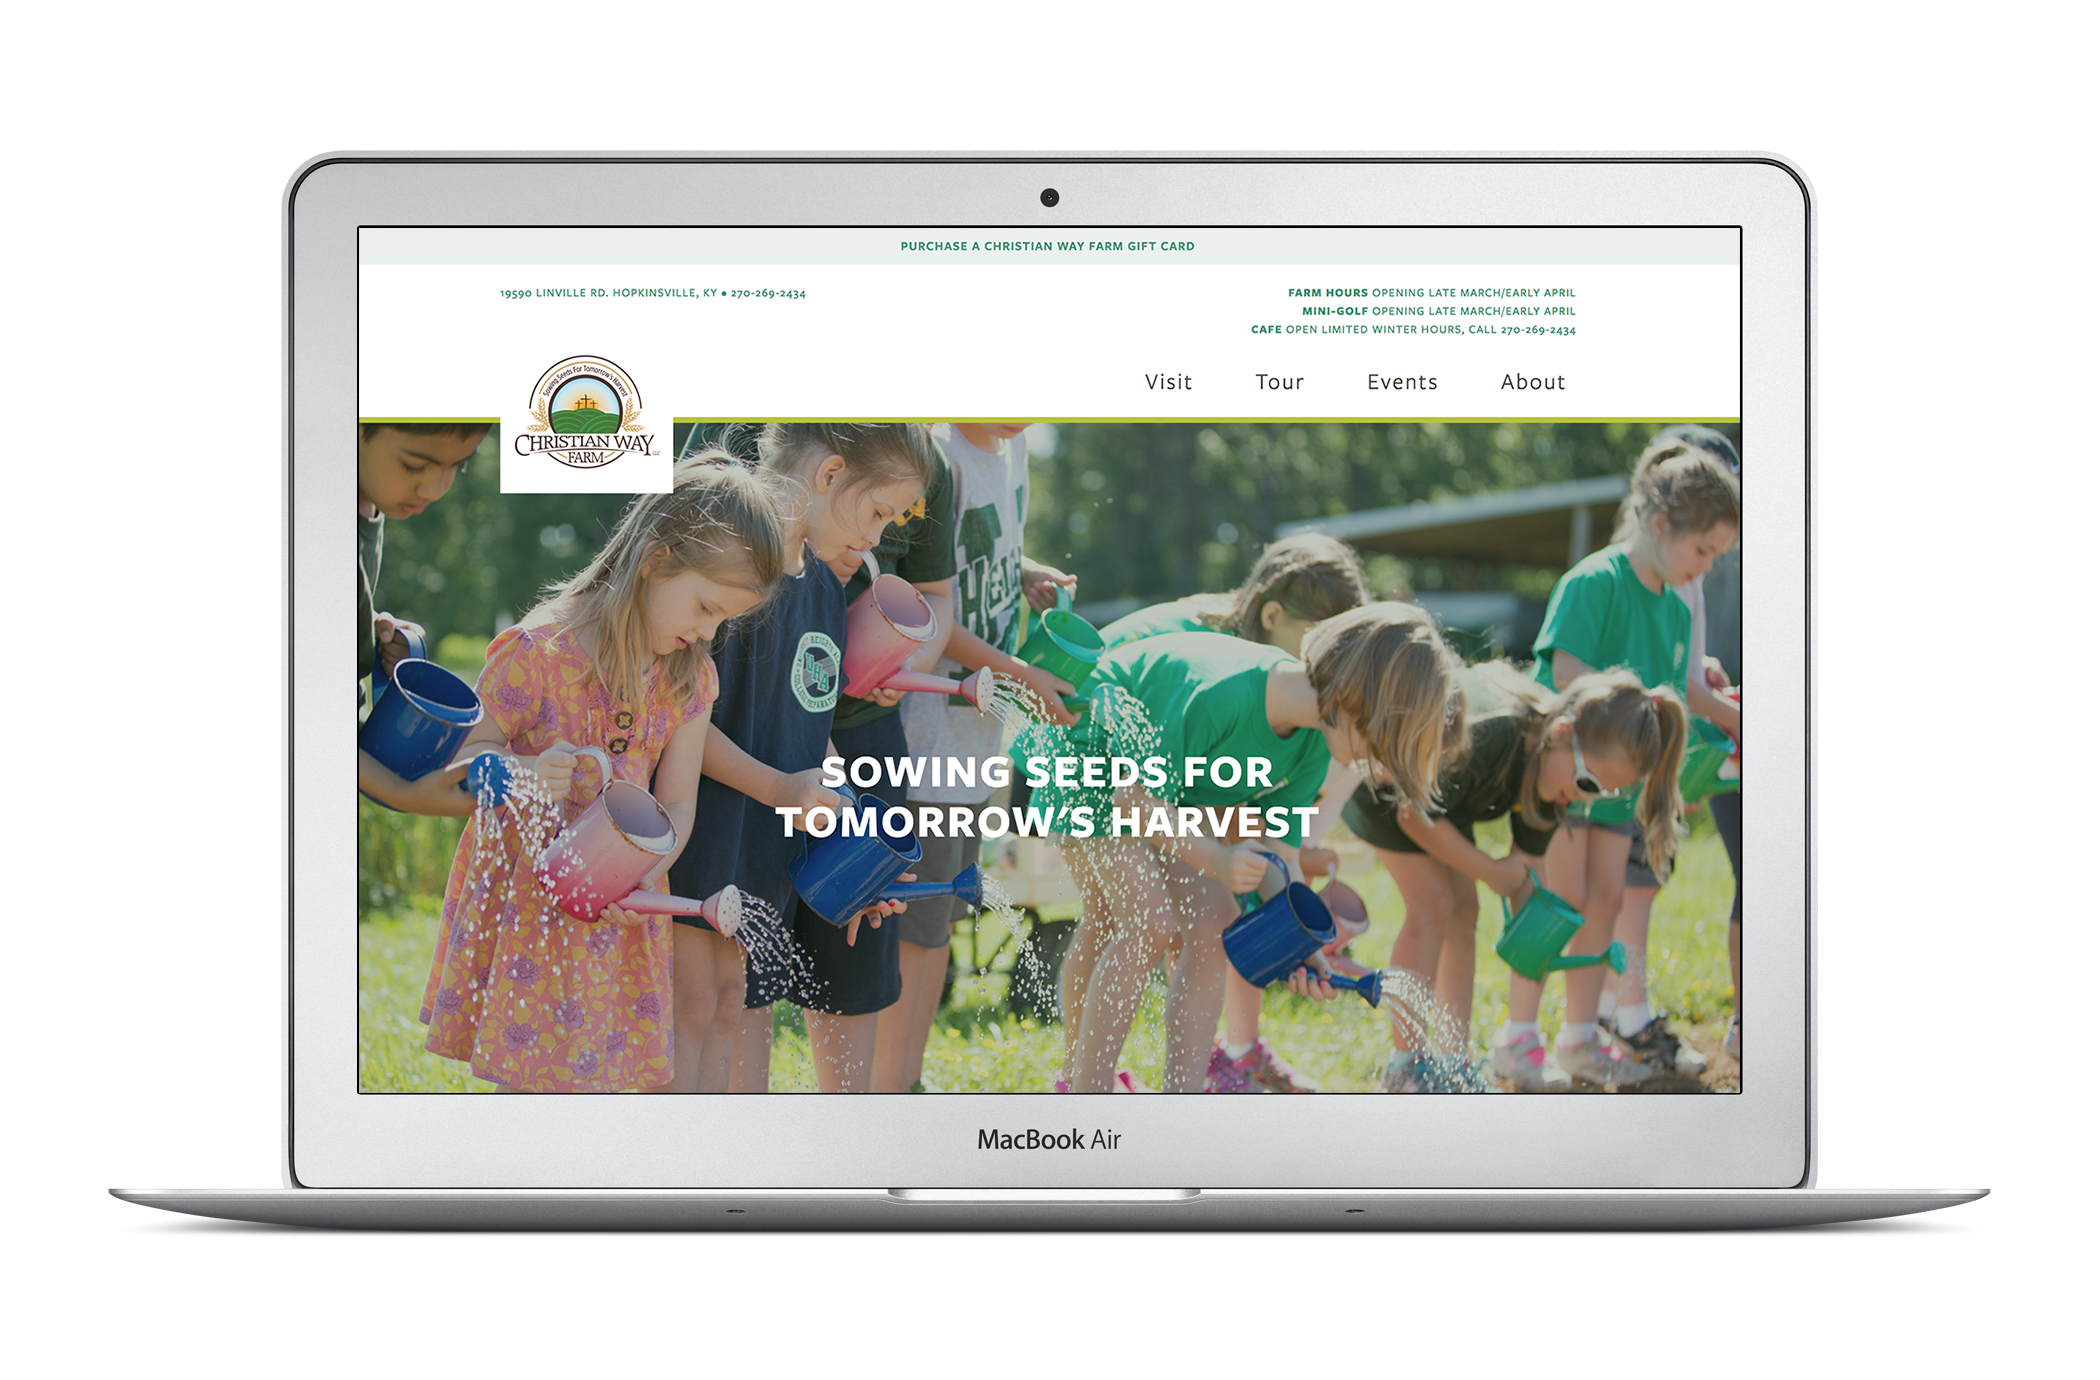 Christian Way Farm Website Design